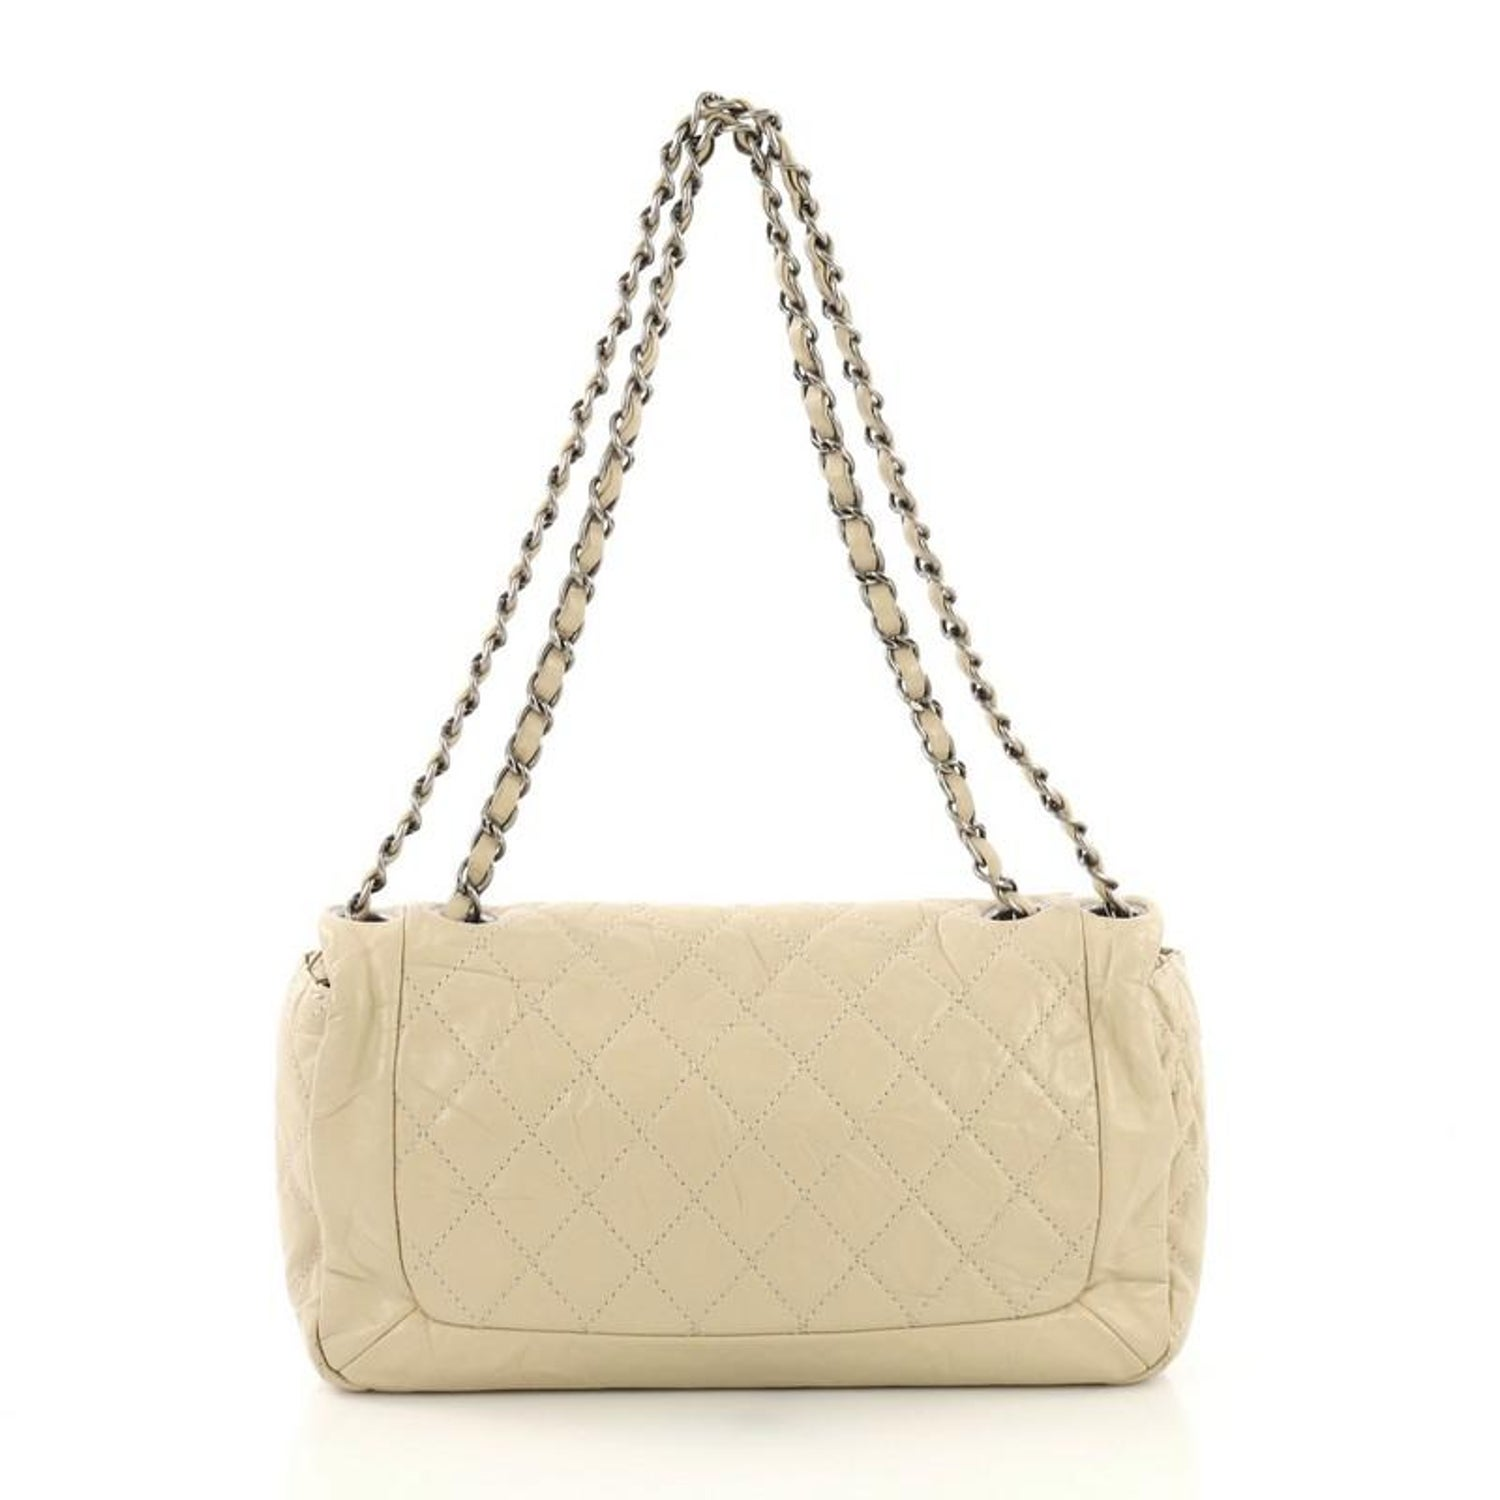 003408b1148d60 Chanel Coco Rider Flap Bag Quilted Aged Calfskin Medium For Sale at 1stdibs